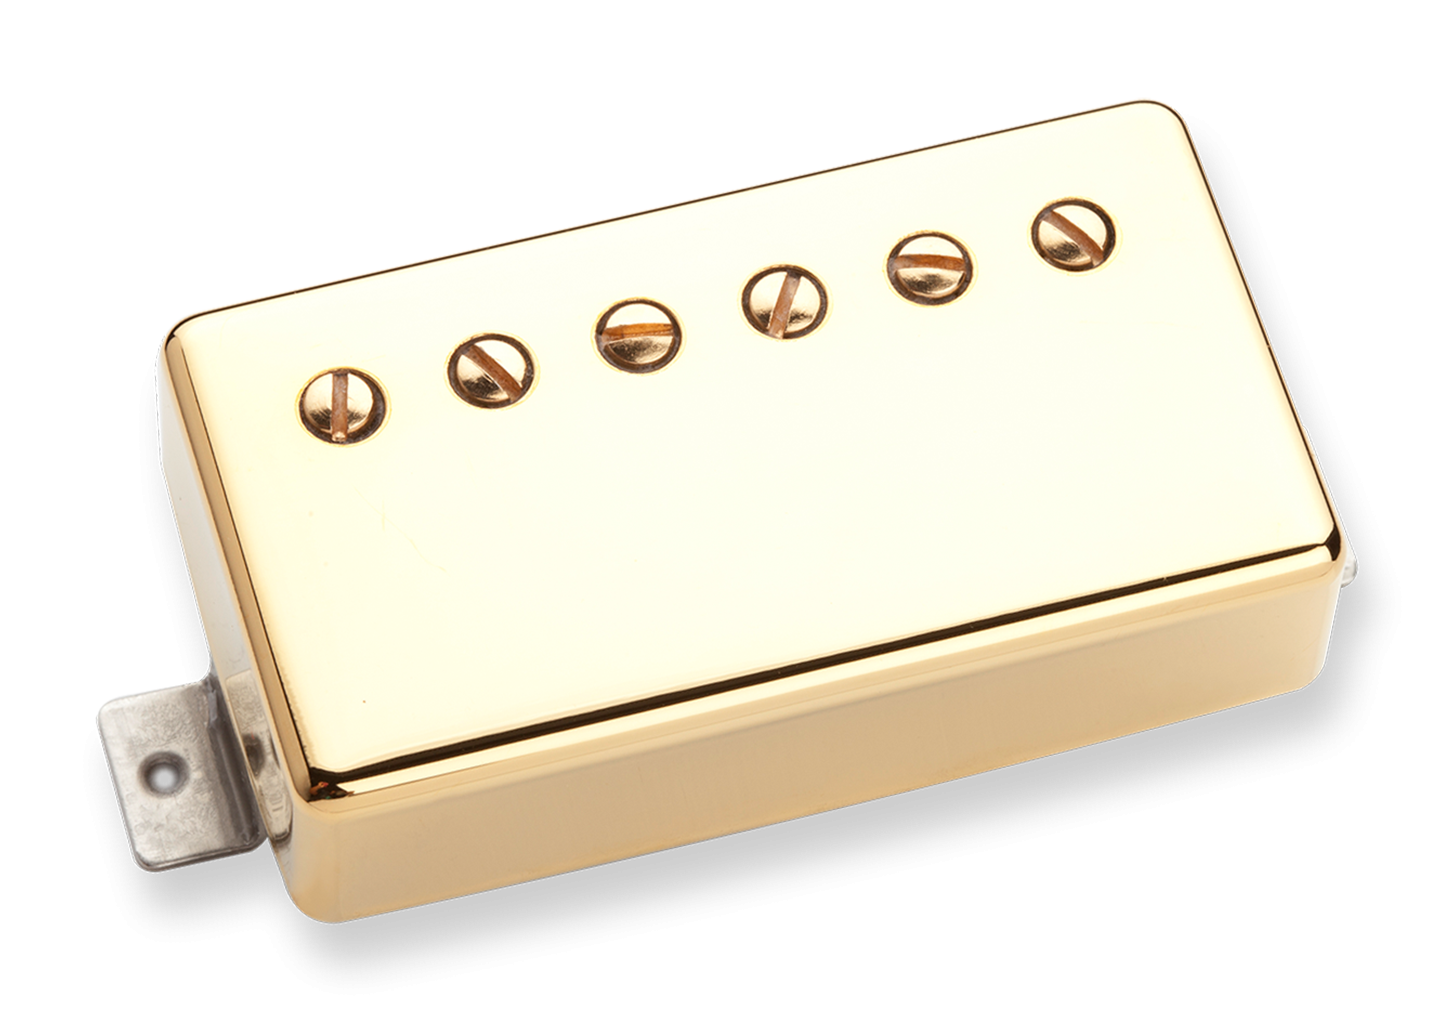 Seymour Duncan Seth Lover Humbucker - SH-55N Neck Gold 4 Conductor